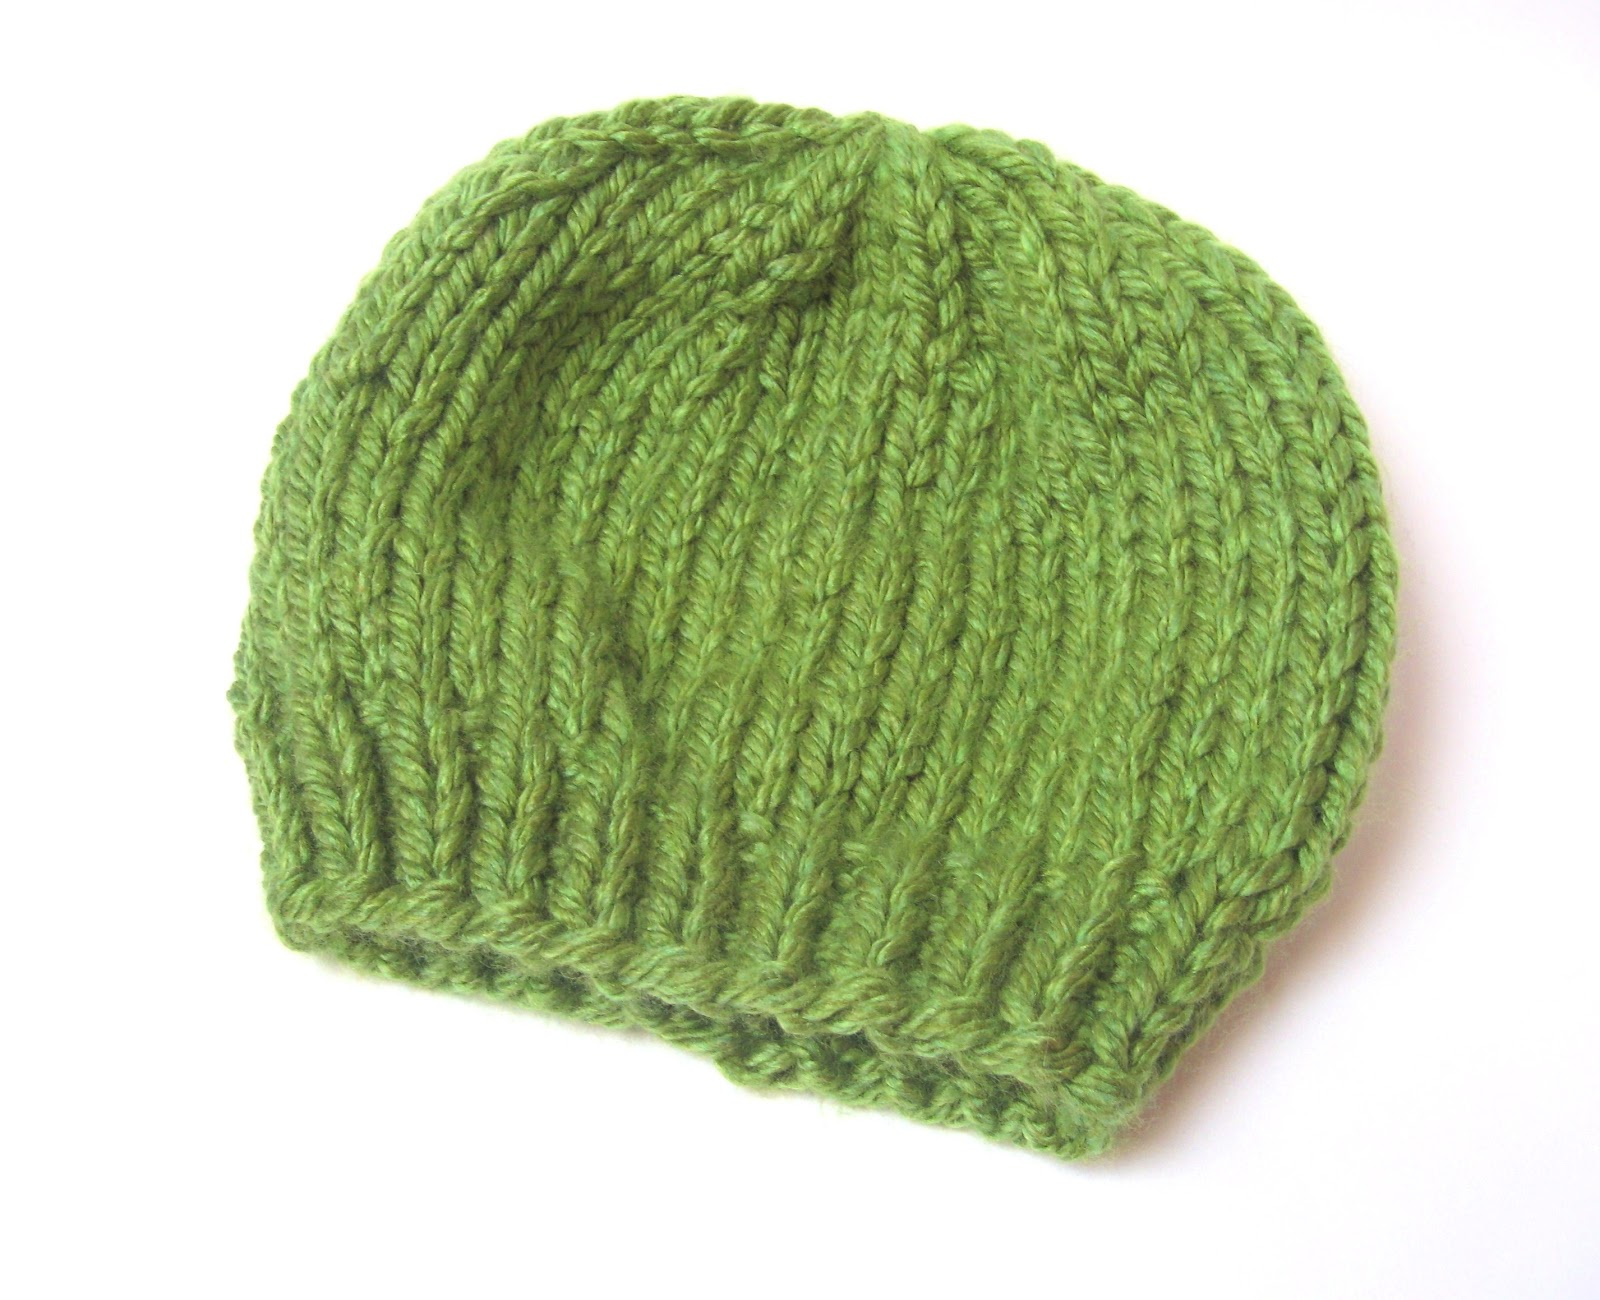 Knitting Hat Patterns : megan E sass handknits: Free Knitting Pattern: Easy Chunky ...